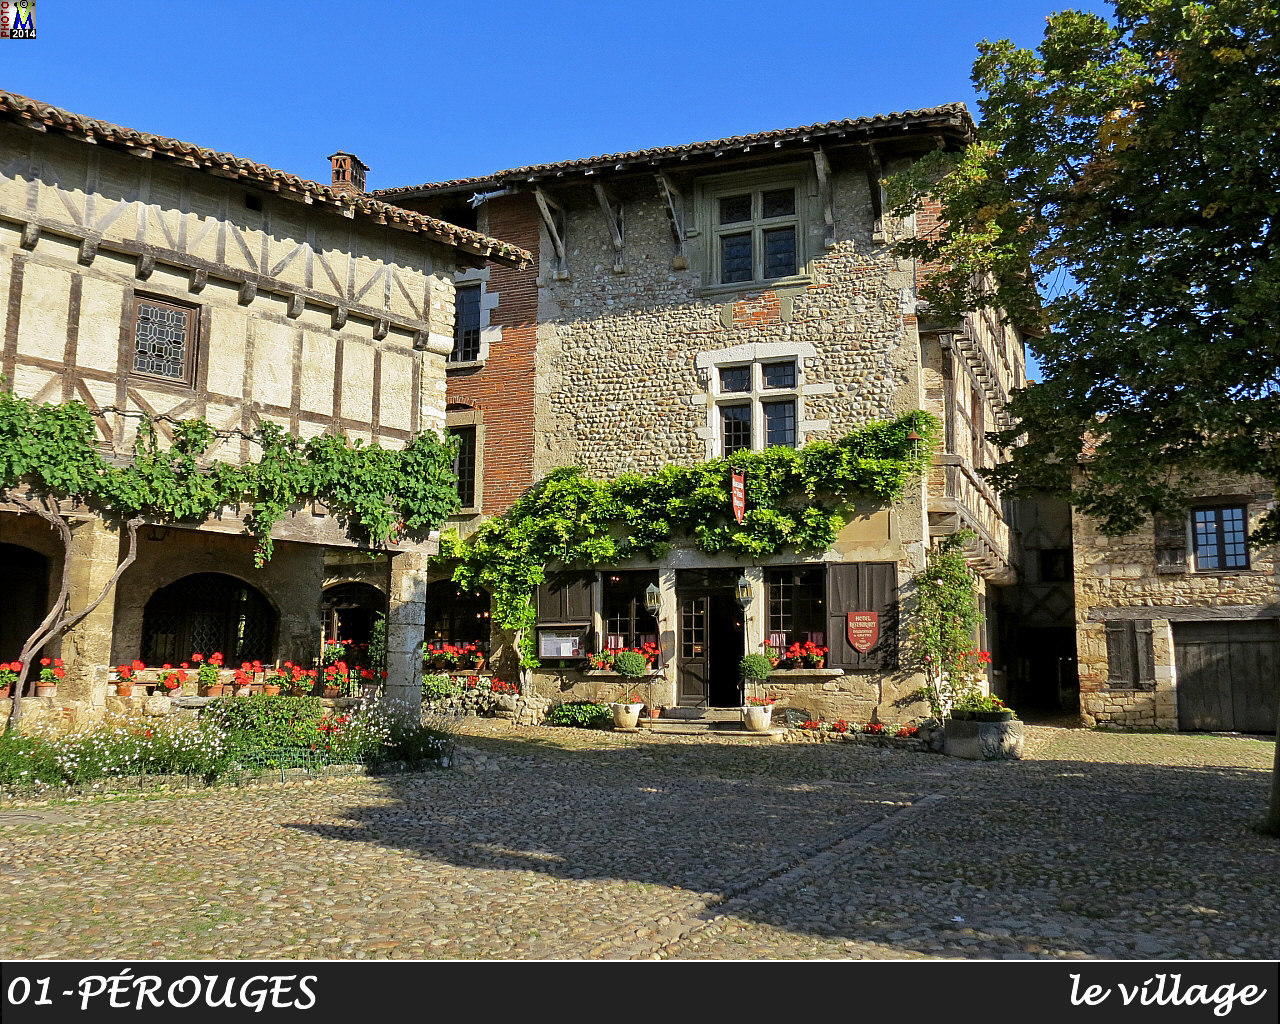 01PEROUGES_village_114.jpg